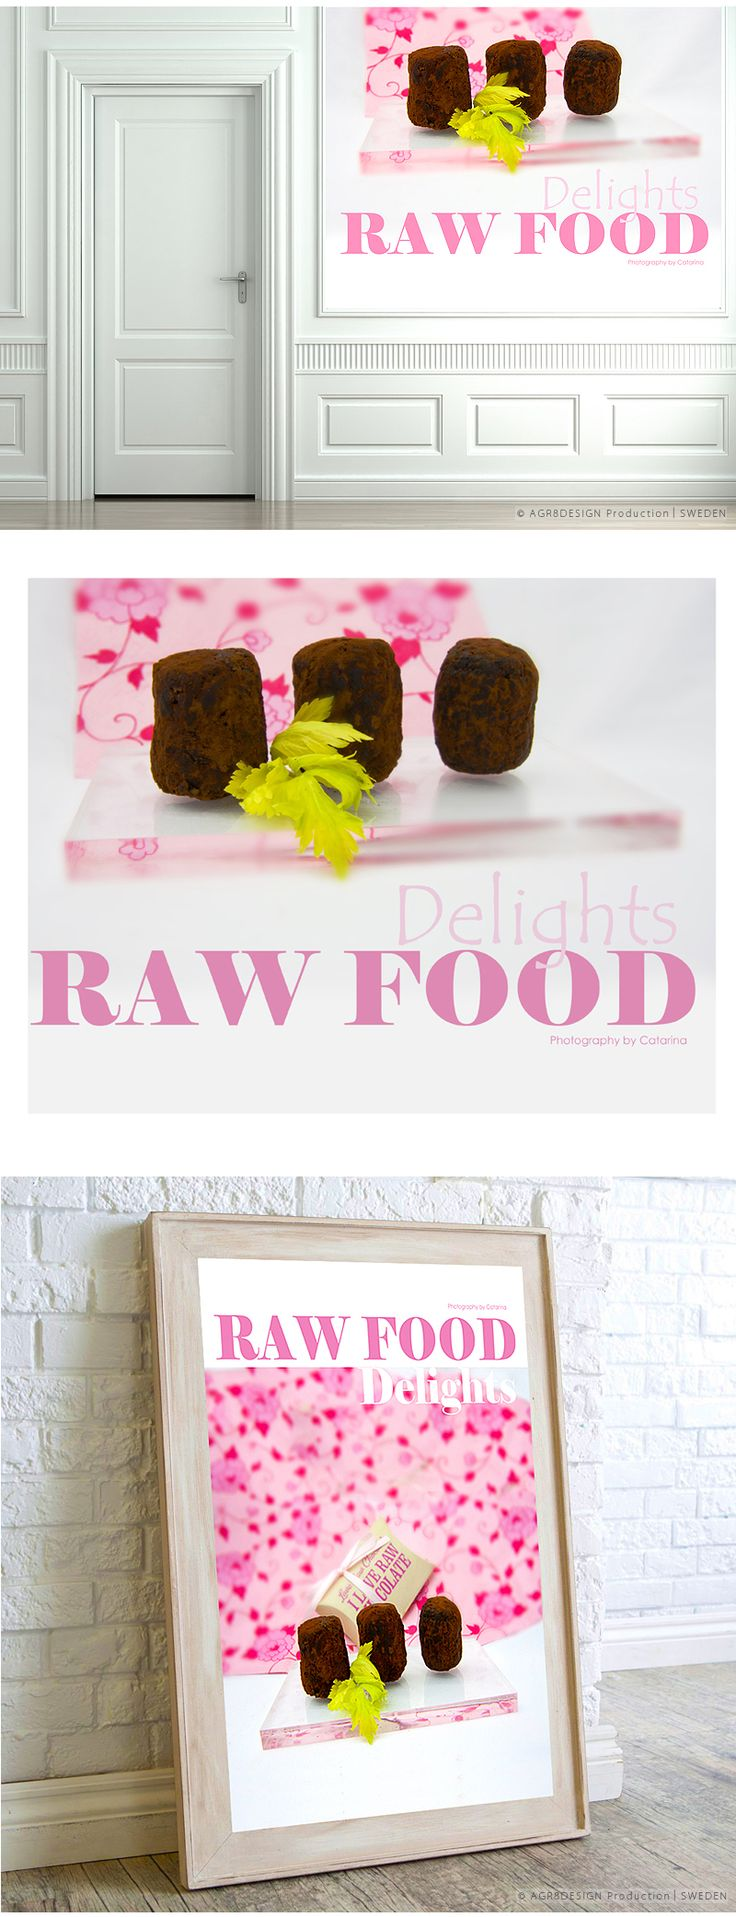 PHOTOGRAPHY | Poster . Affisch. Interior - big canvas | ☆ Rawfood Delights ☆